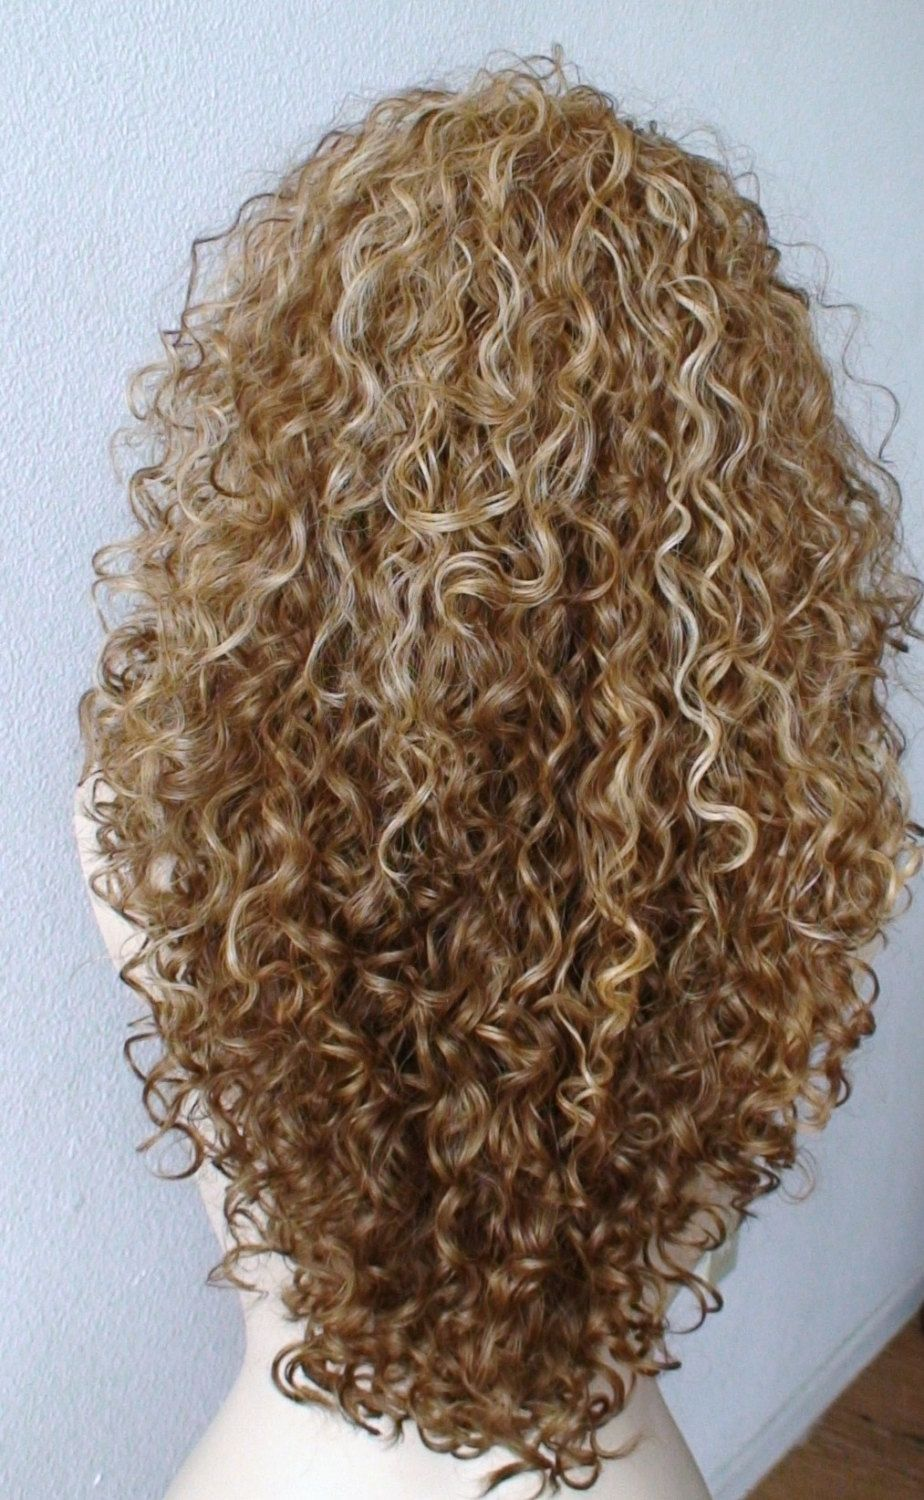 Curly Dirty Blonde Hair 34